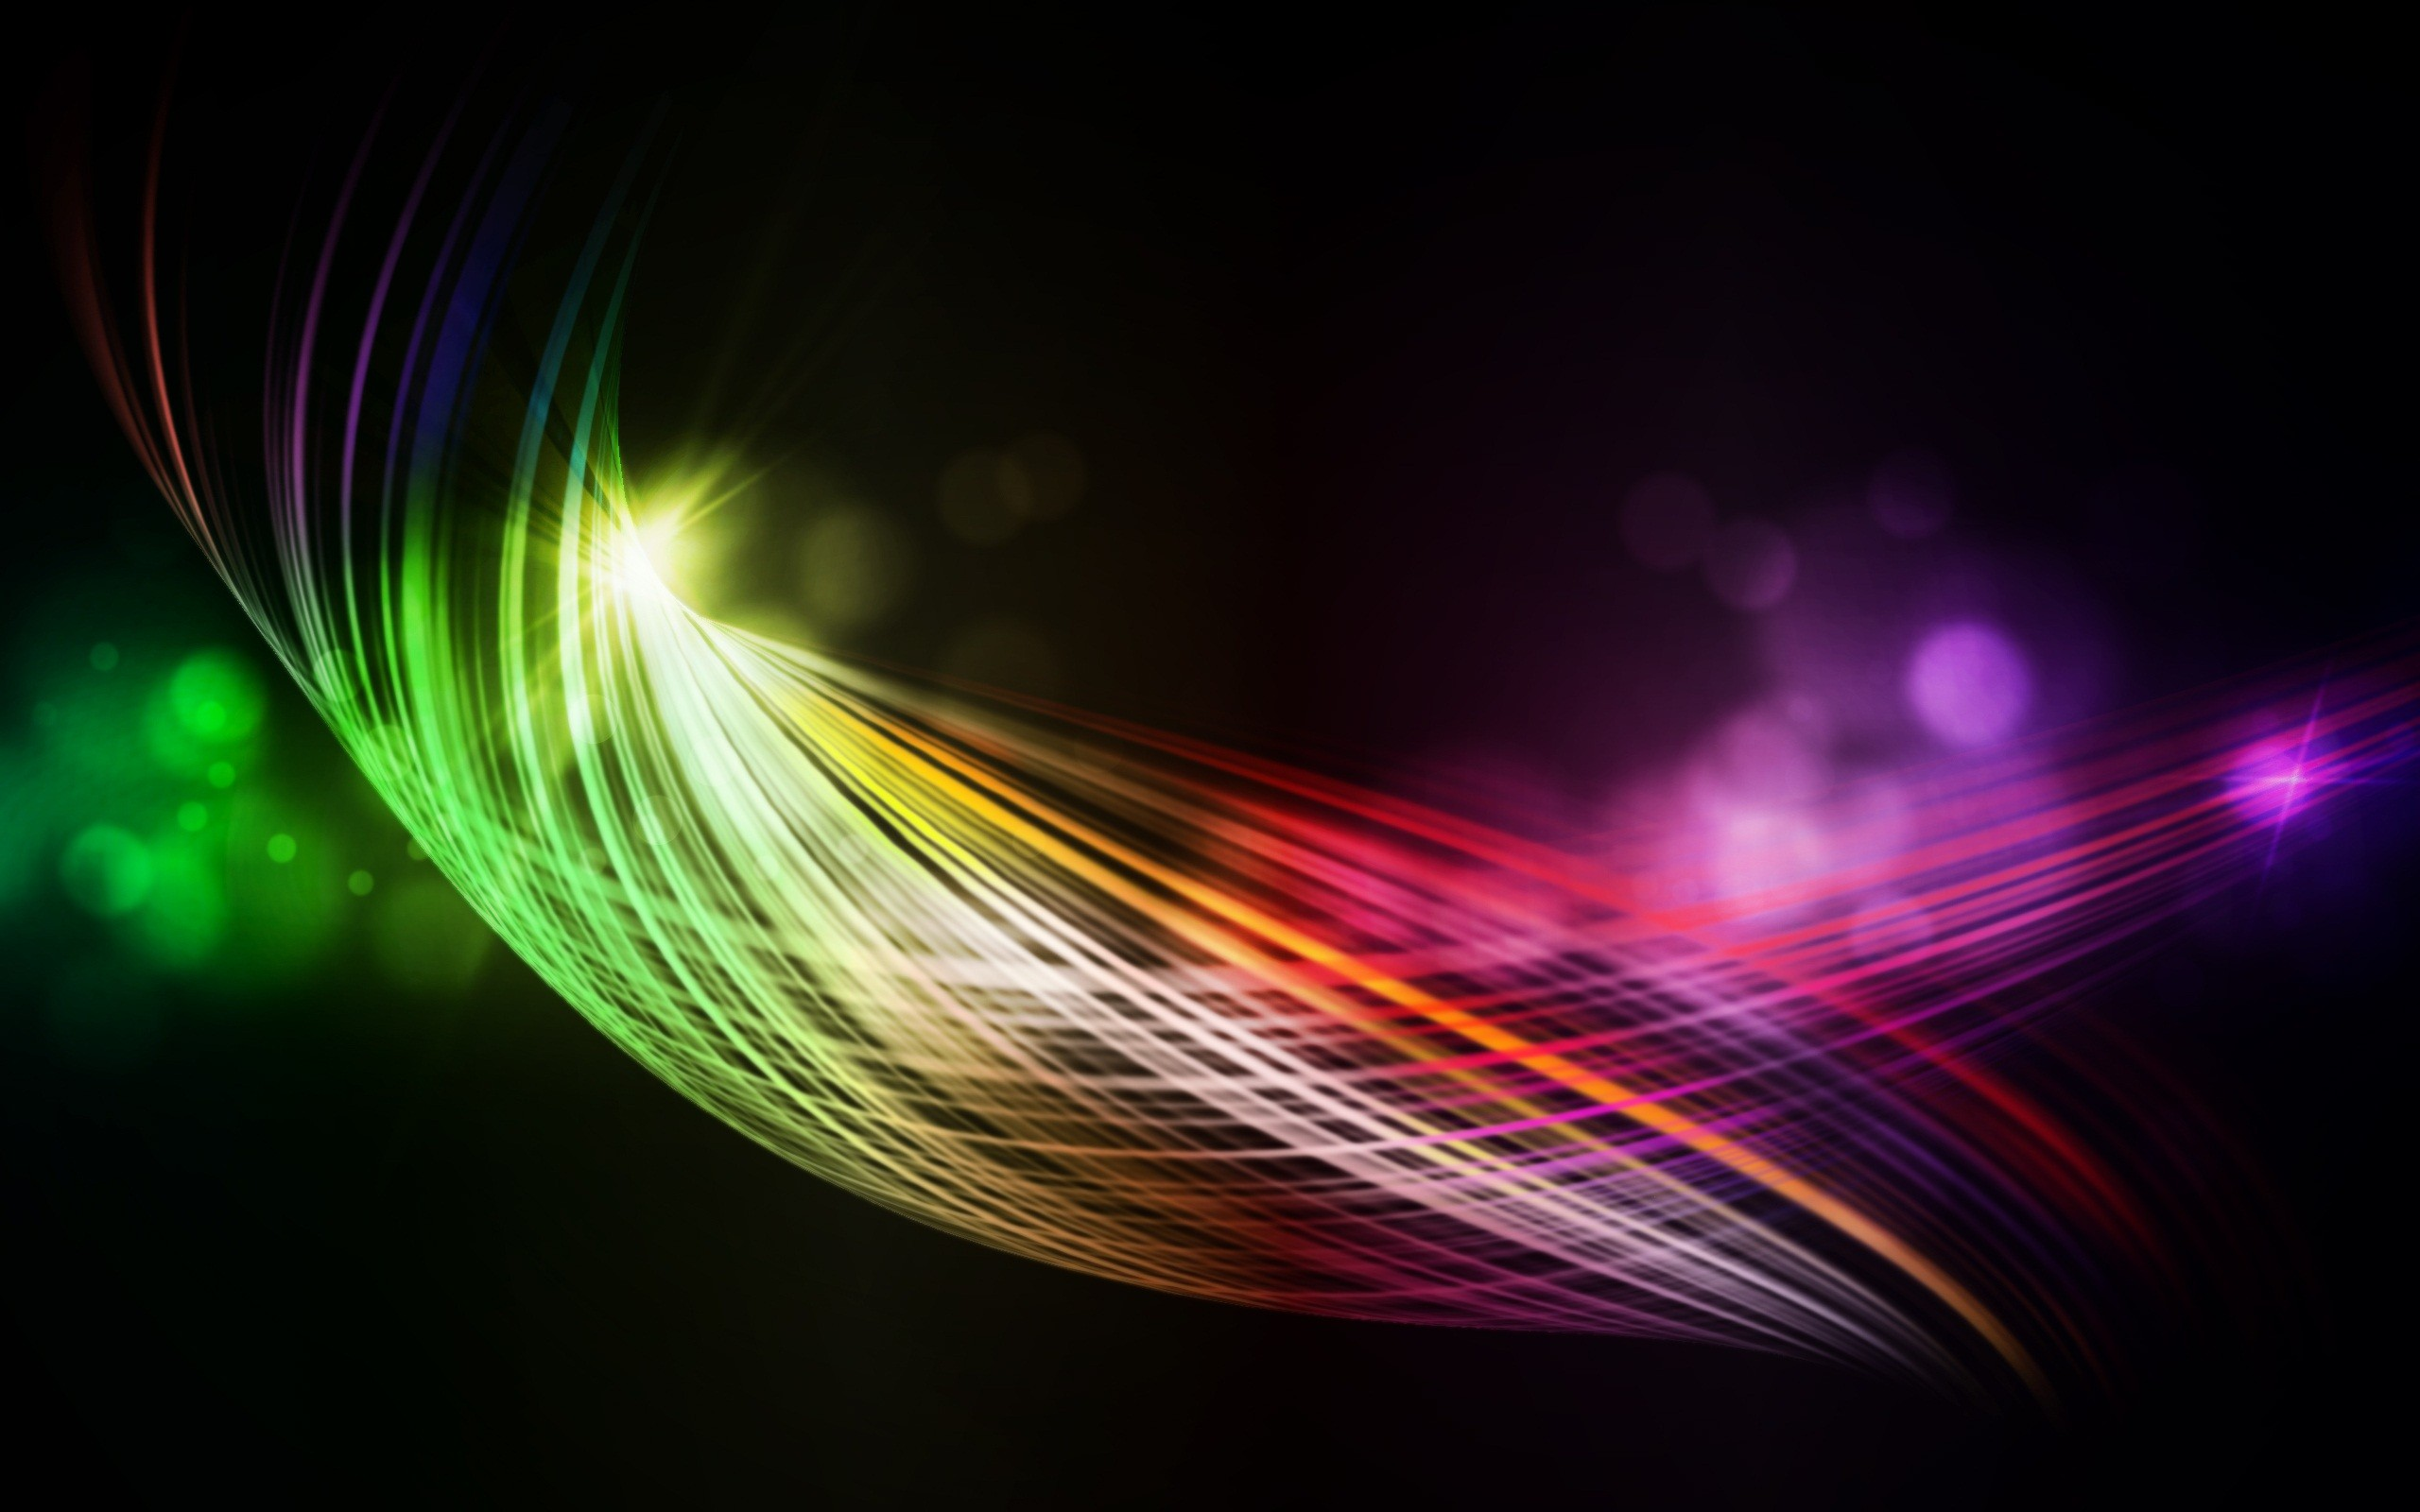 Abstract Colorful Wallpaper 2560x1600 Abstract Colorful Lines 2560x1600